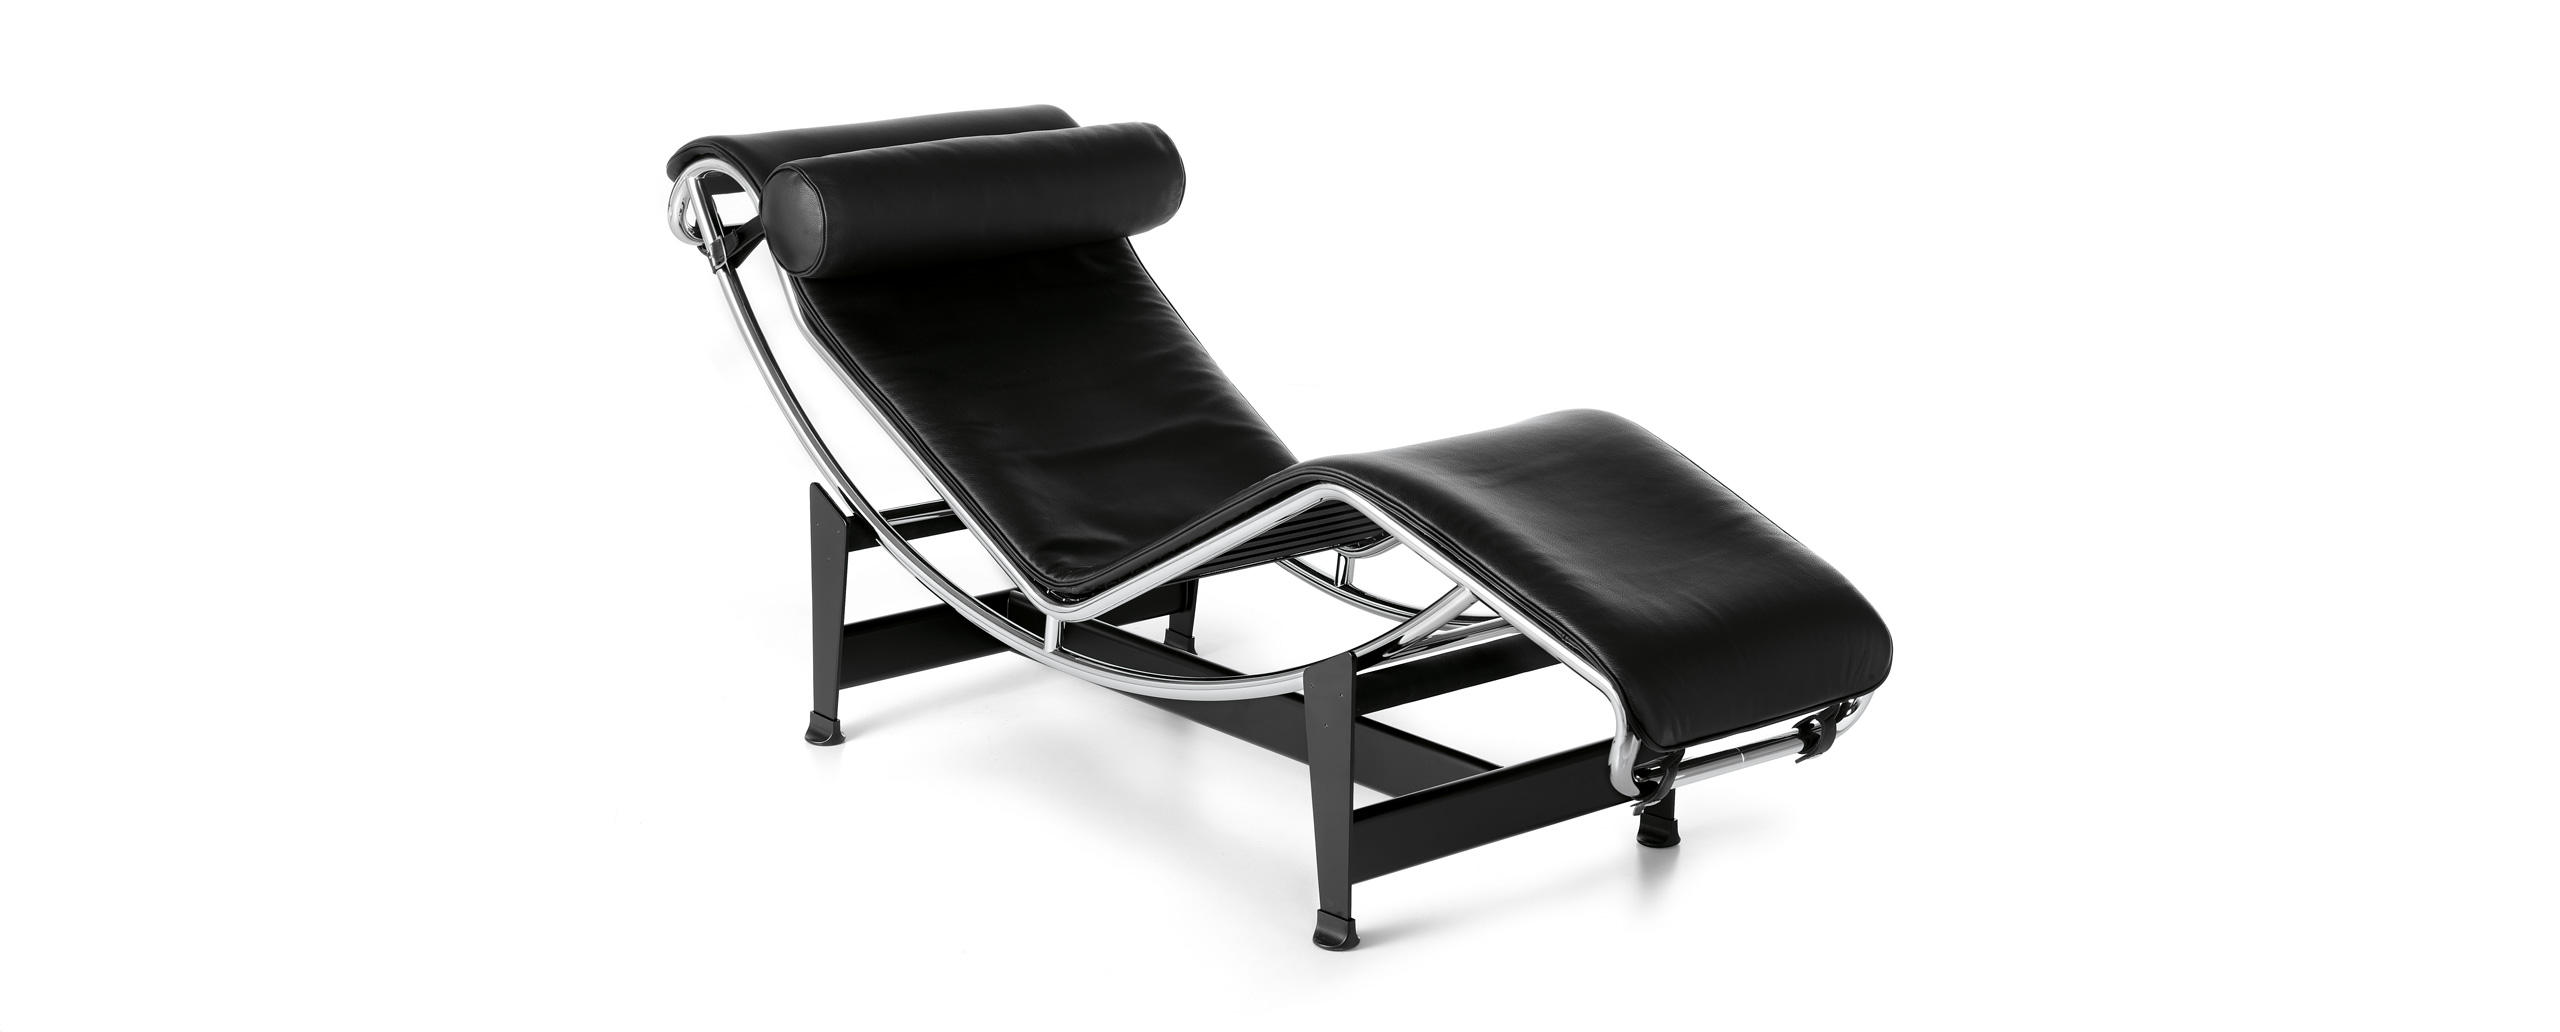 Lc4 cassina le corbusier for Chaise longue pony lc4 le corbusier